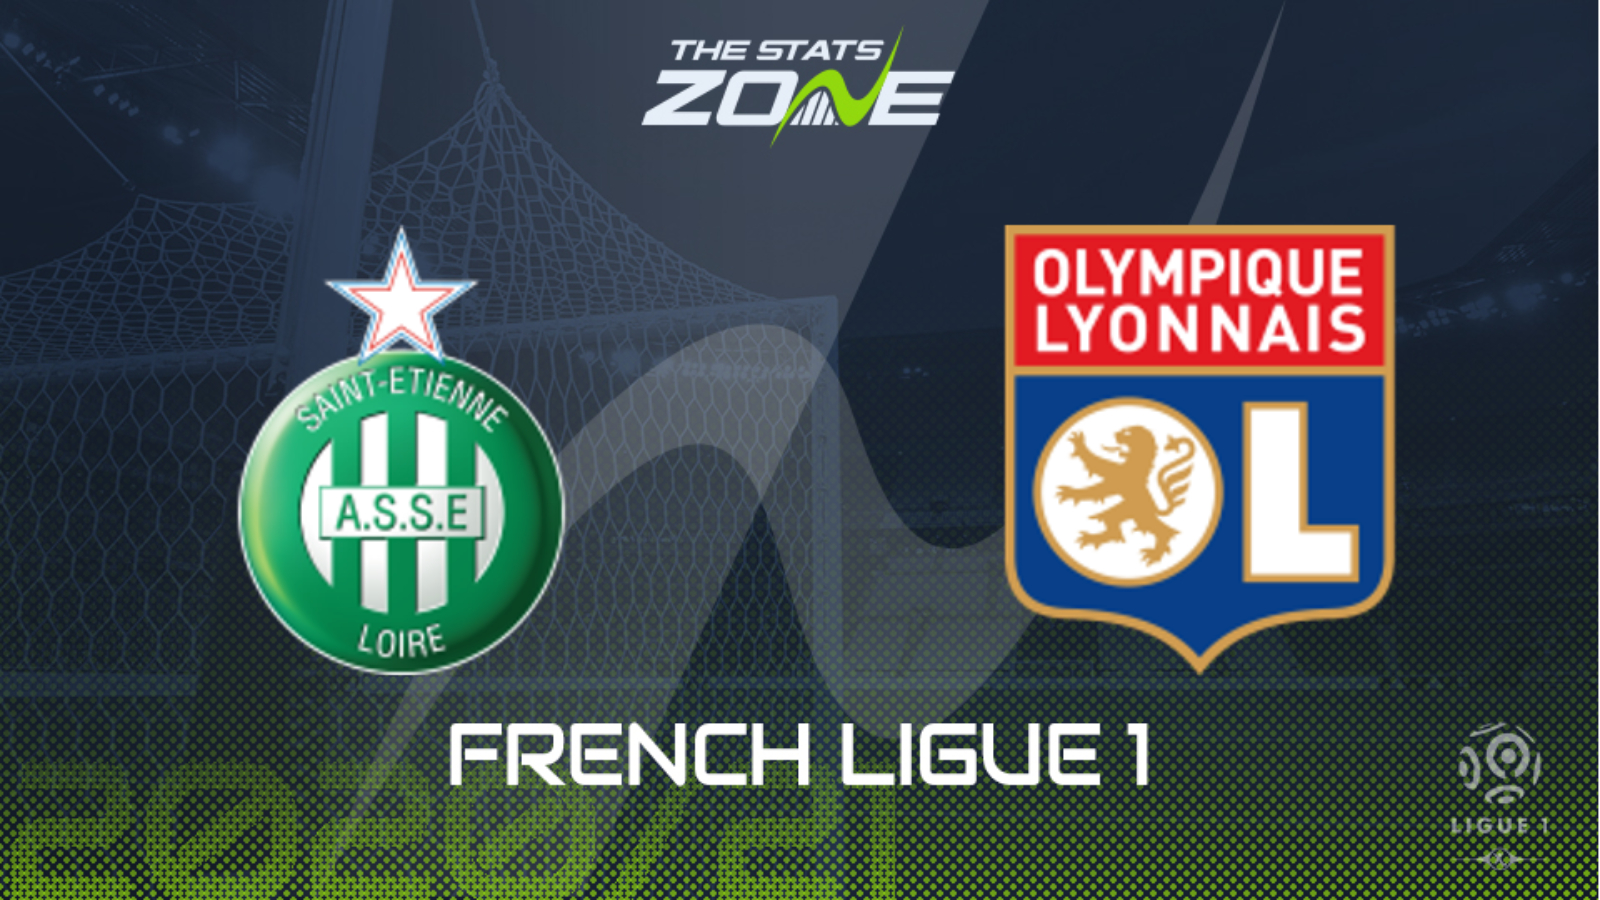 St.etienne vs lyon betting tips nhl sports betting